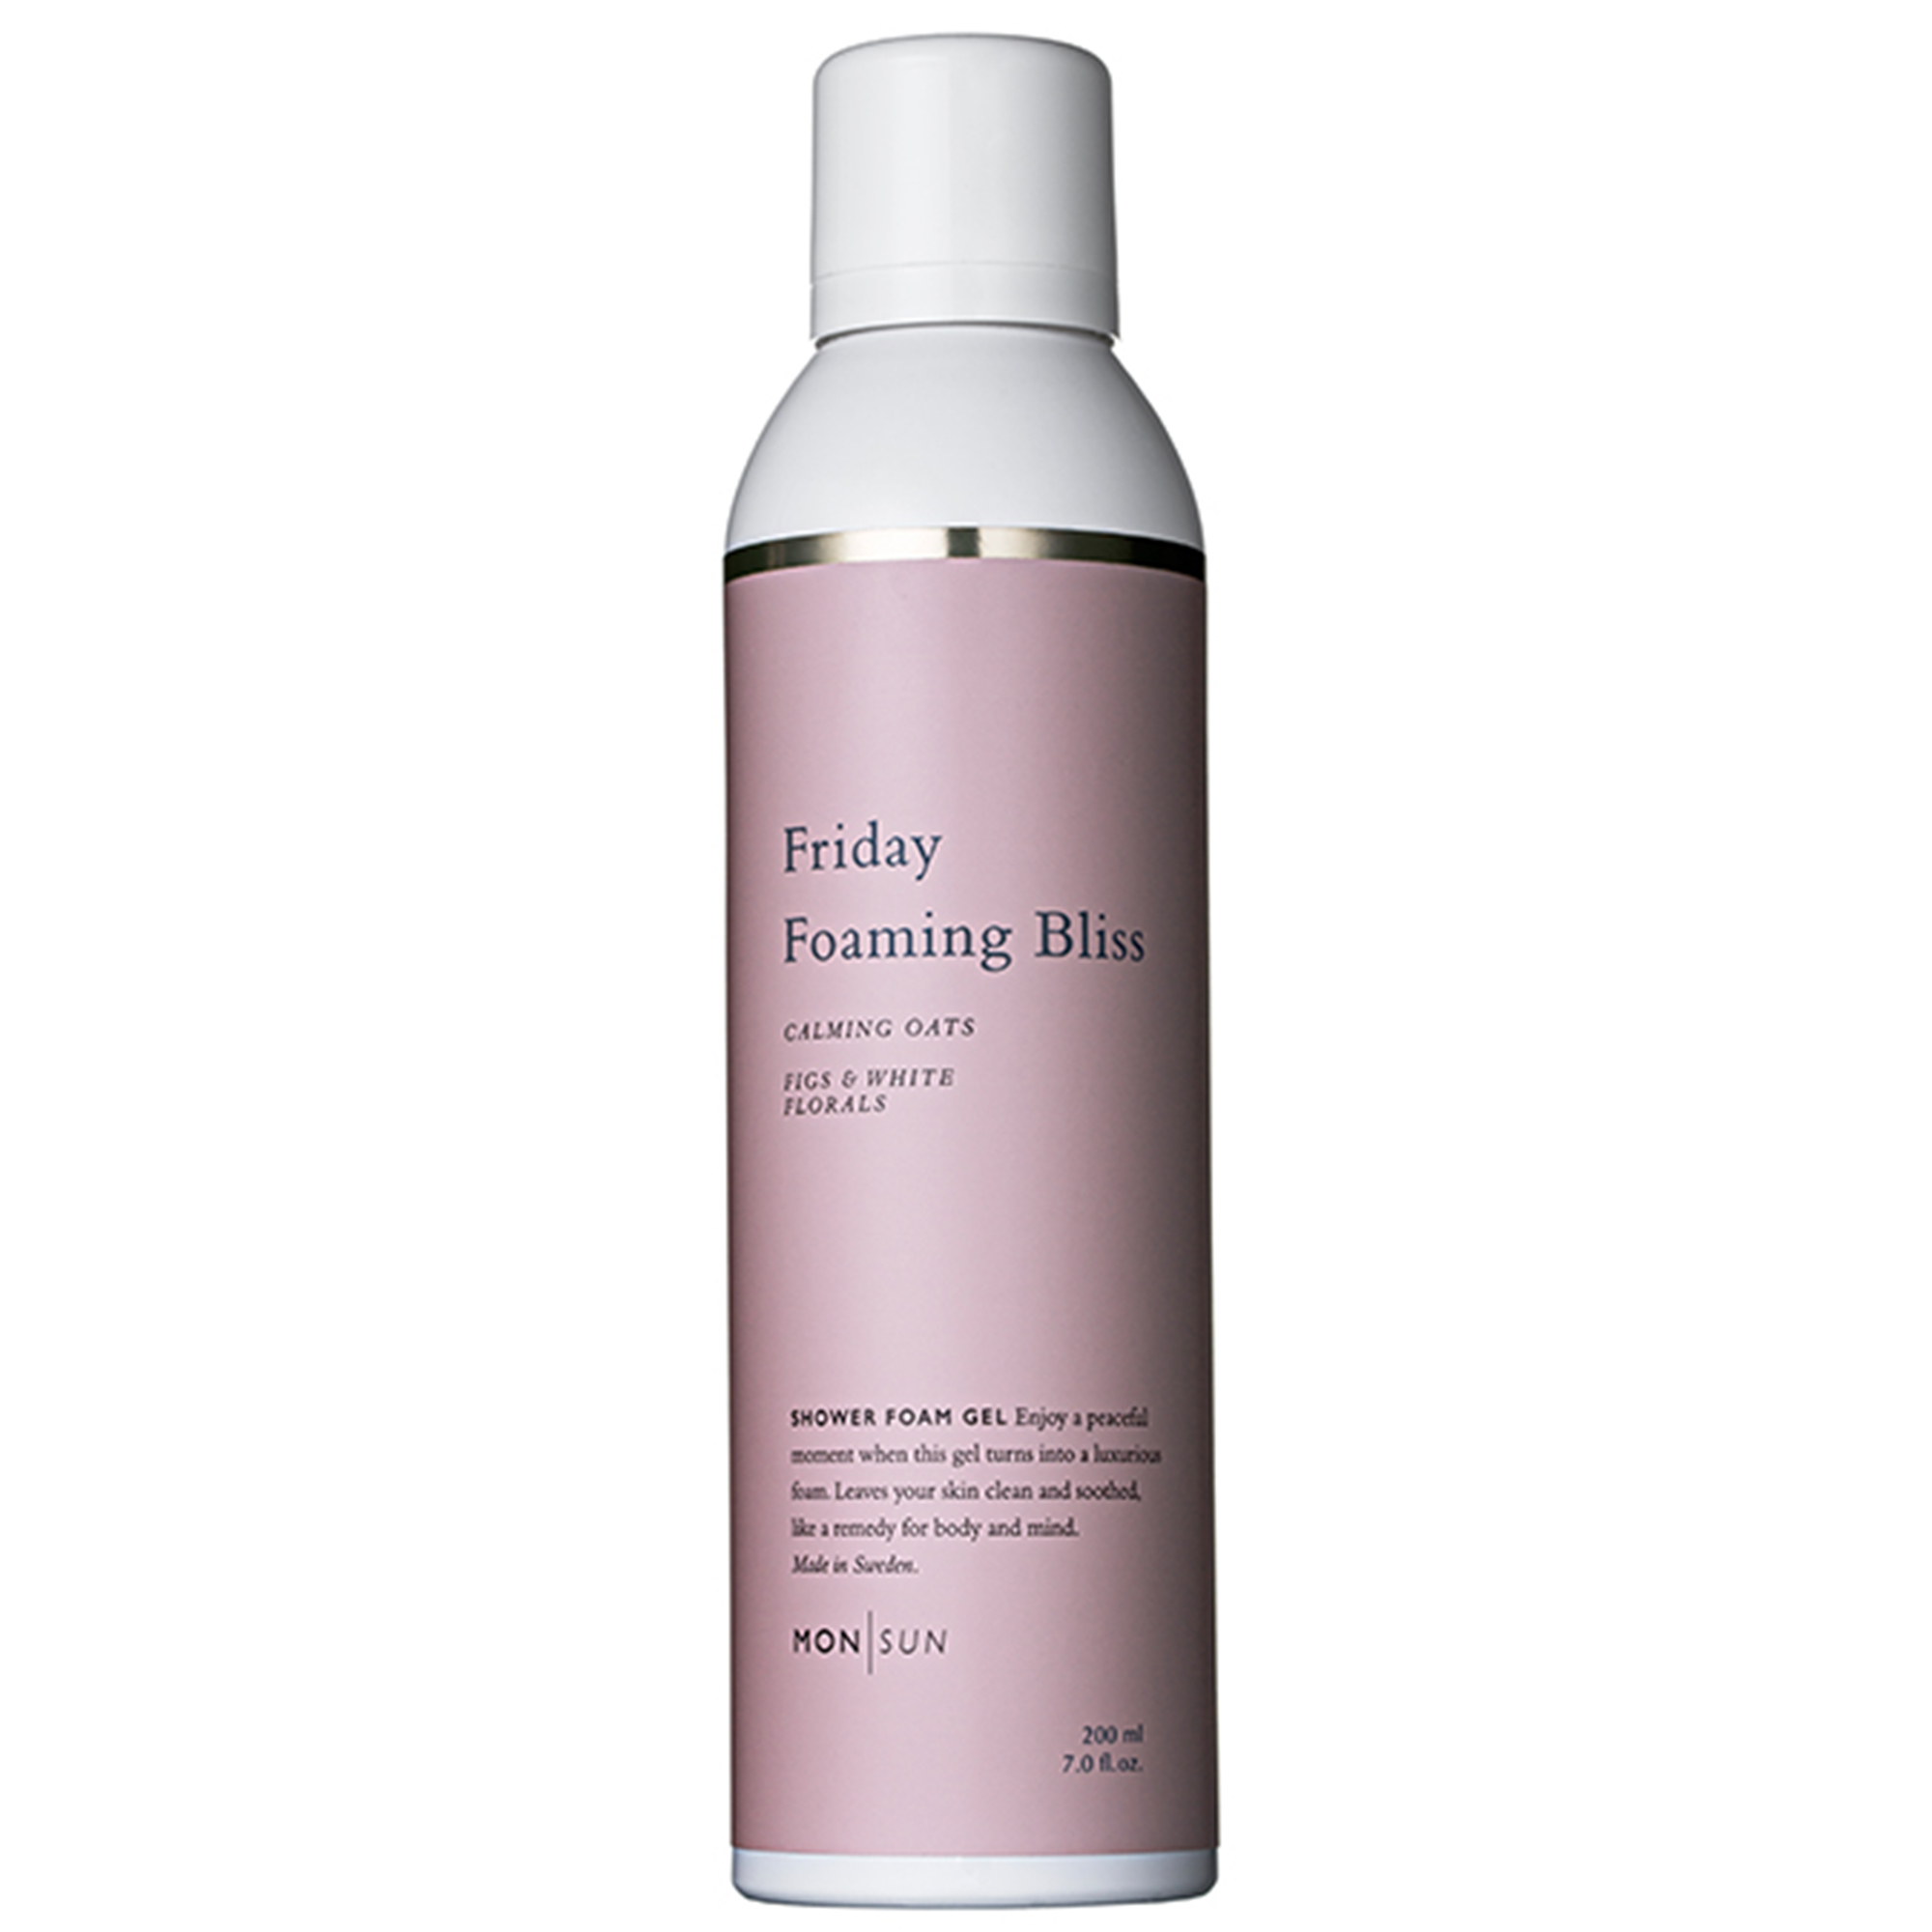 Friday Foaming Bliss Calming Oats Shower Gel 200 ml